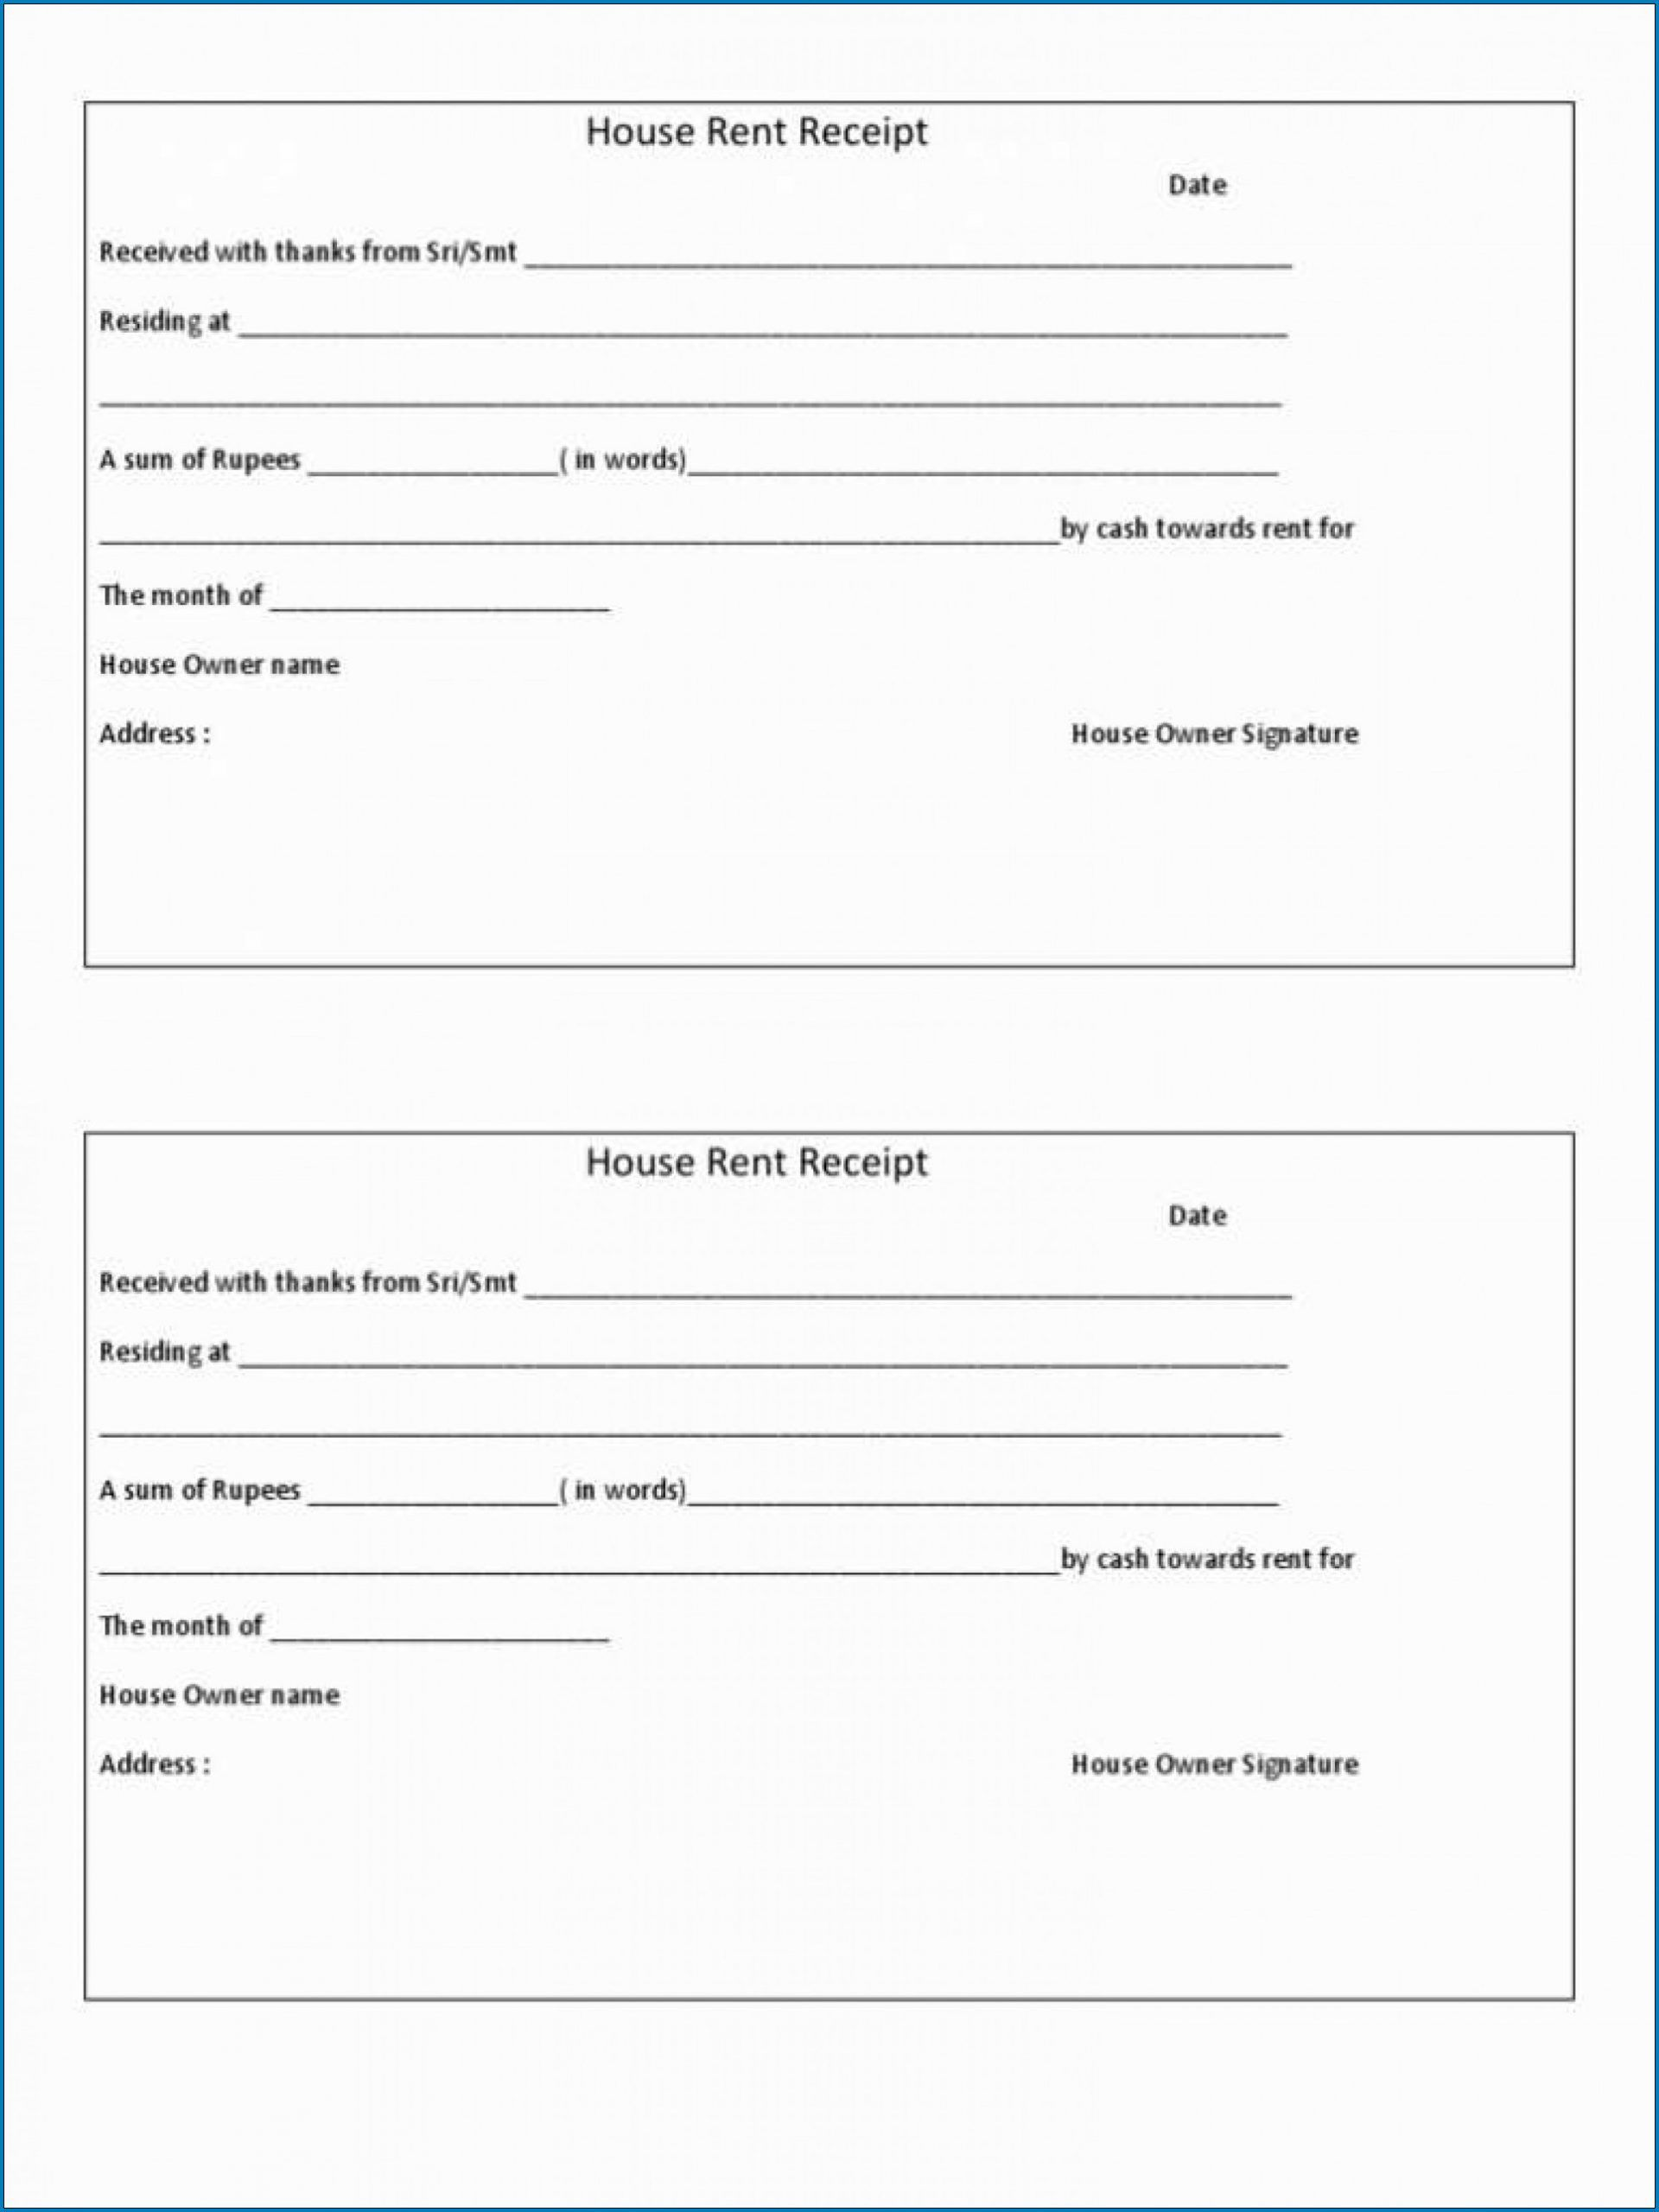 009 Stirring House Rent Receipt Sample Doc Design  Template India Bill Format Word Document Pdf Download